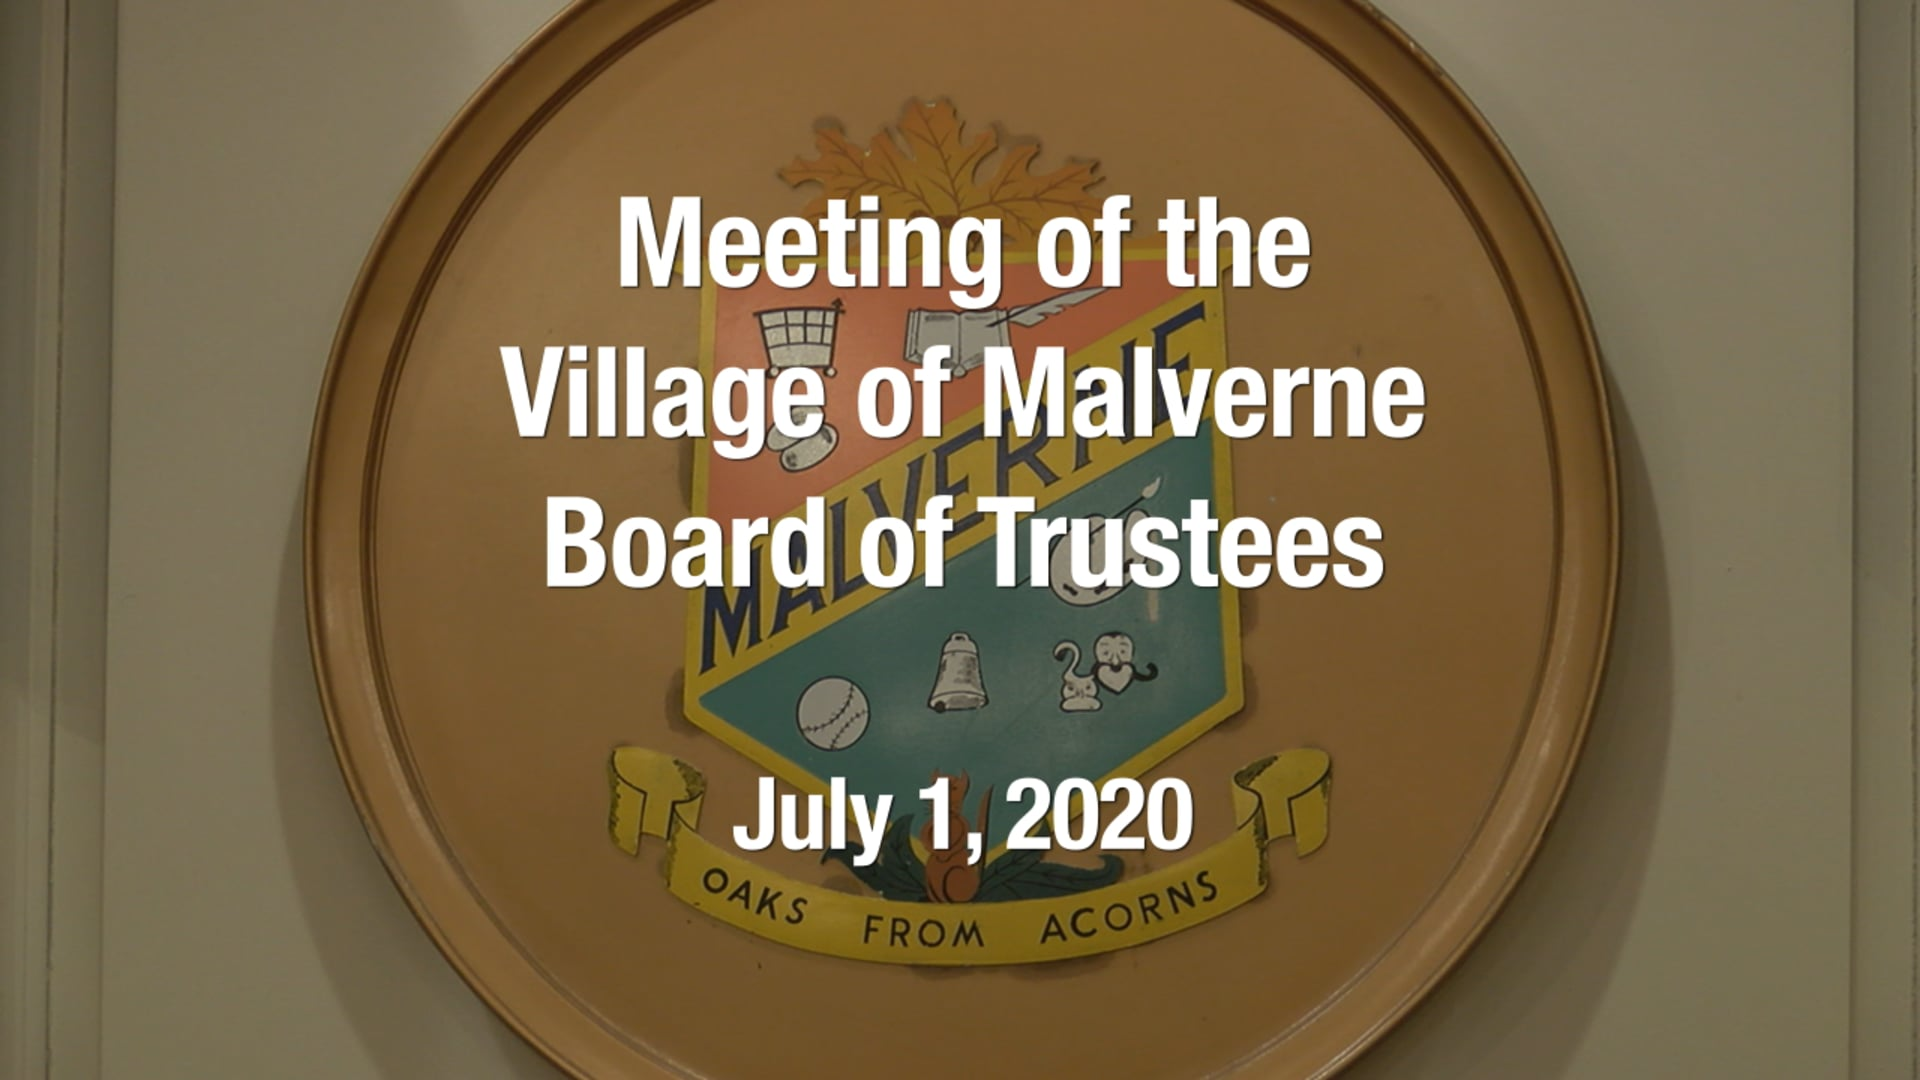 Village of Malverne - Meeting of the Board of Trustees - July 1, 2020